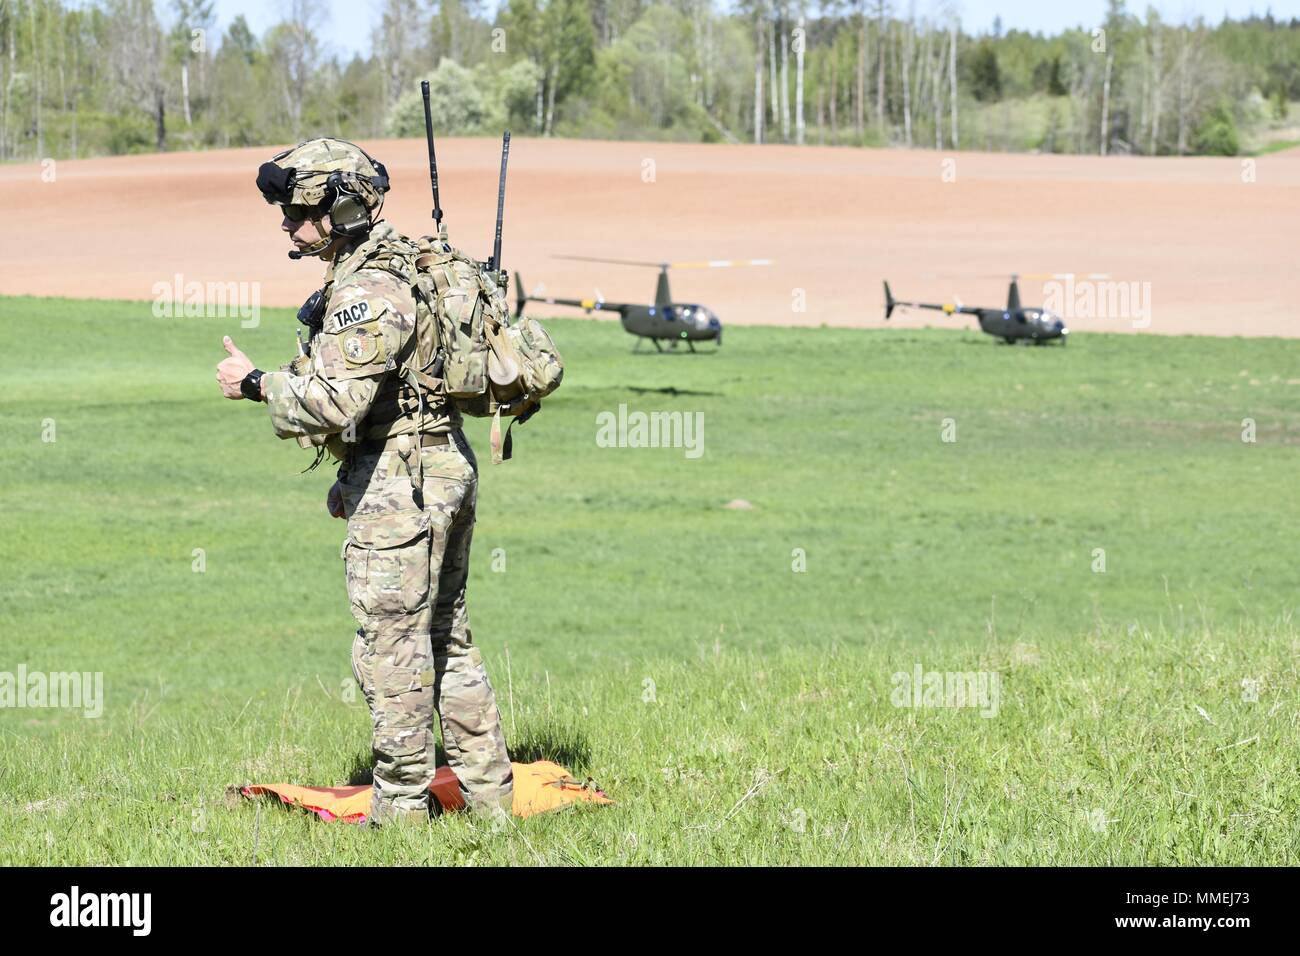 U.S. Air Force Tech Sgt. Laurence Paradis, Tactical Air Control Party member with Okla. National Guard's 146th Air Support Operations Squadron, advises Estonian Defense Force on Joint Terminal Attack Controller capabilities May 9th during Exercise HEDGEHOG 2018 in Southern Estonia, May 9, 2018. The TACP personnel served as advisers to the Estonian Defense Force to create combined fires between U.S. Army and multinational aviation assets. Photo By Maj. Kurt M. Rauschenberg, 58th EMIB Public Affairs Officer. () Stock Photo